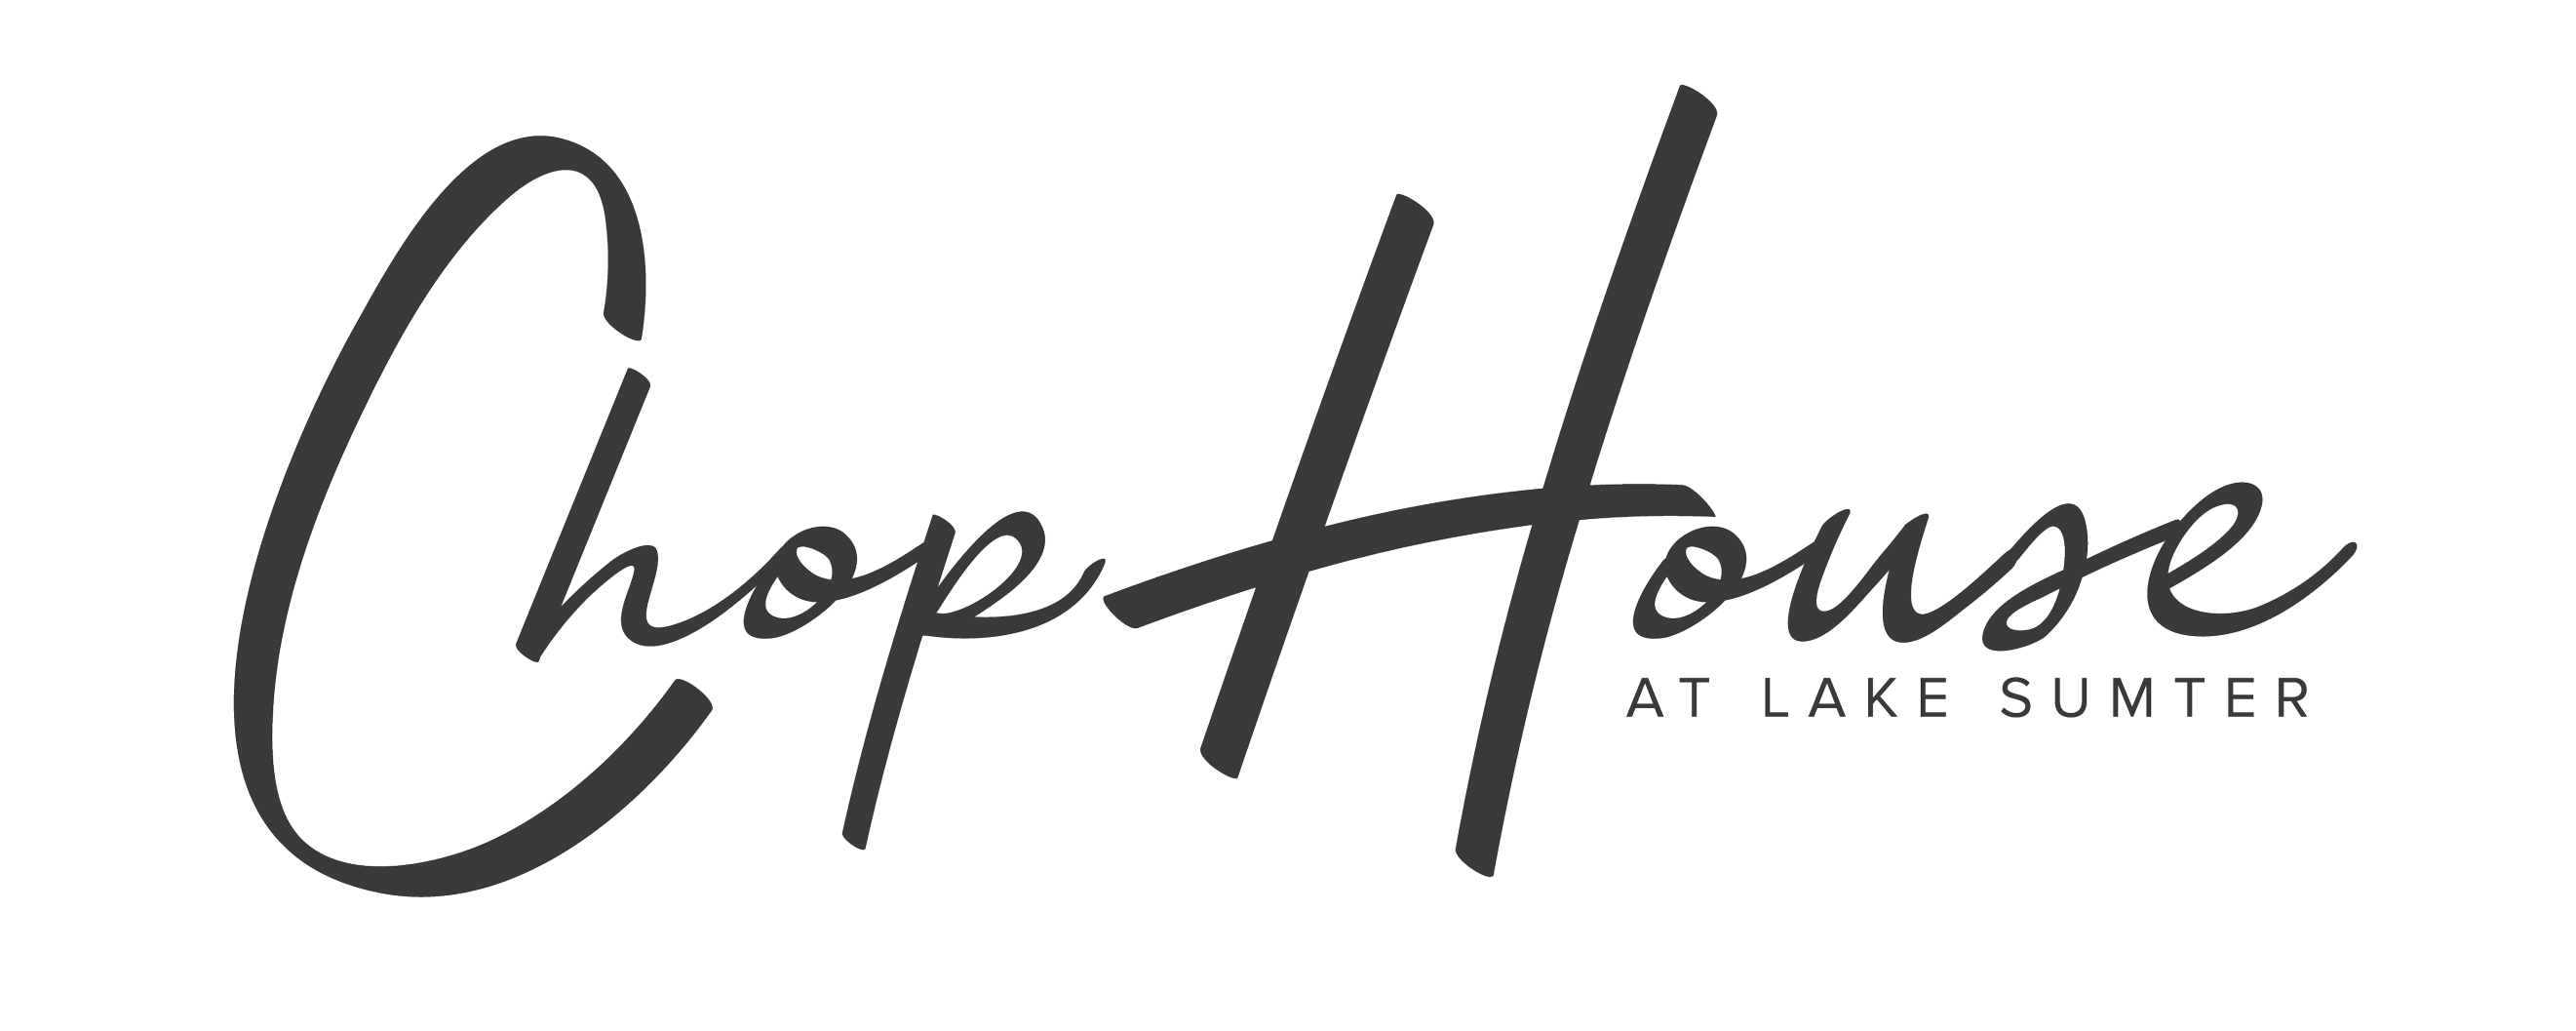 Image result for chophouse logo the villages